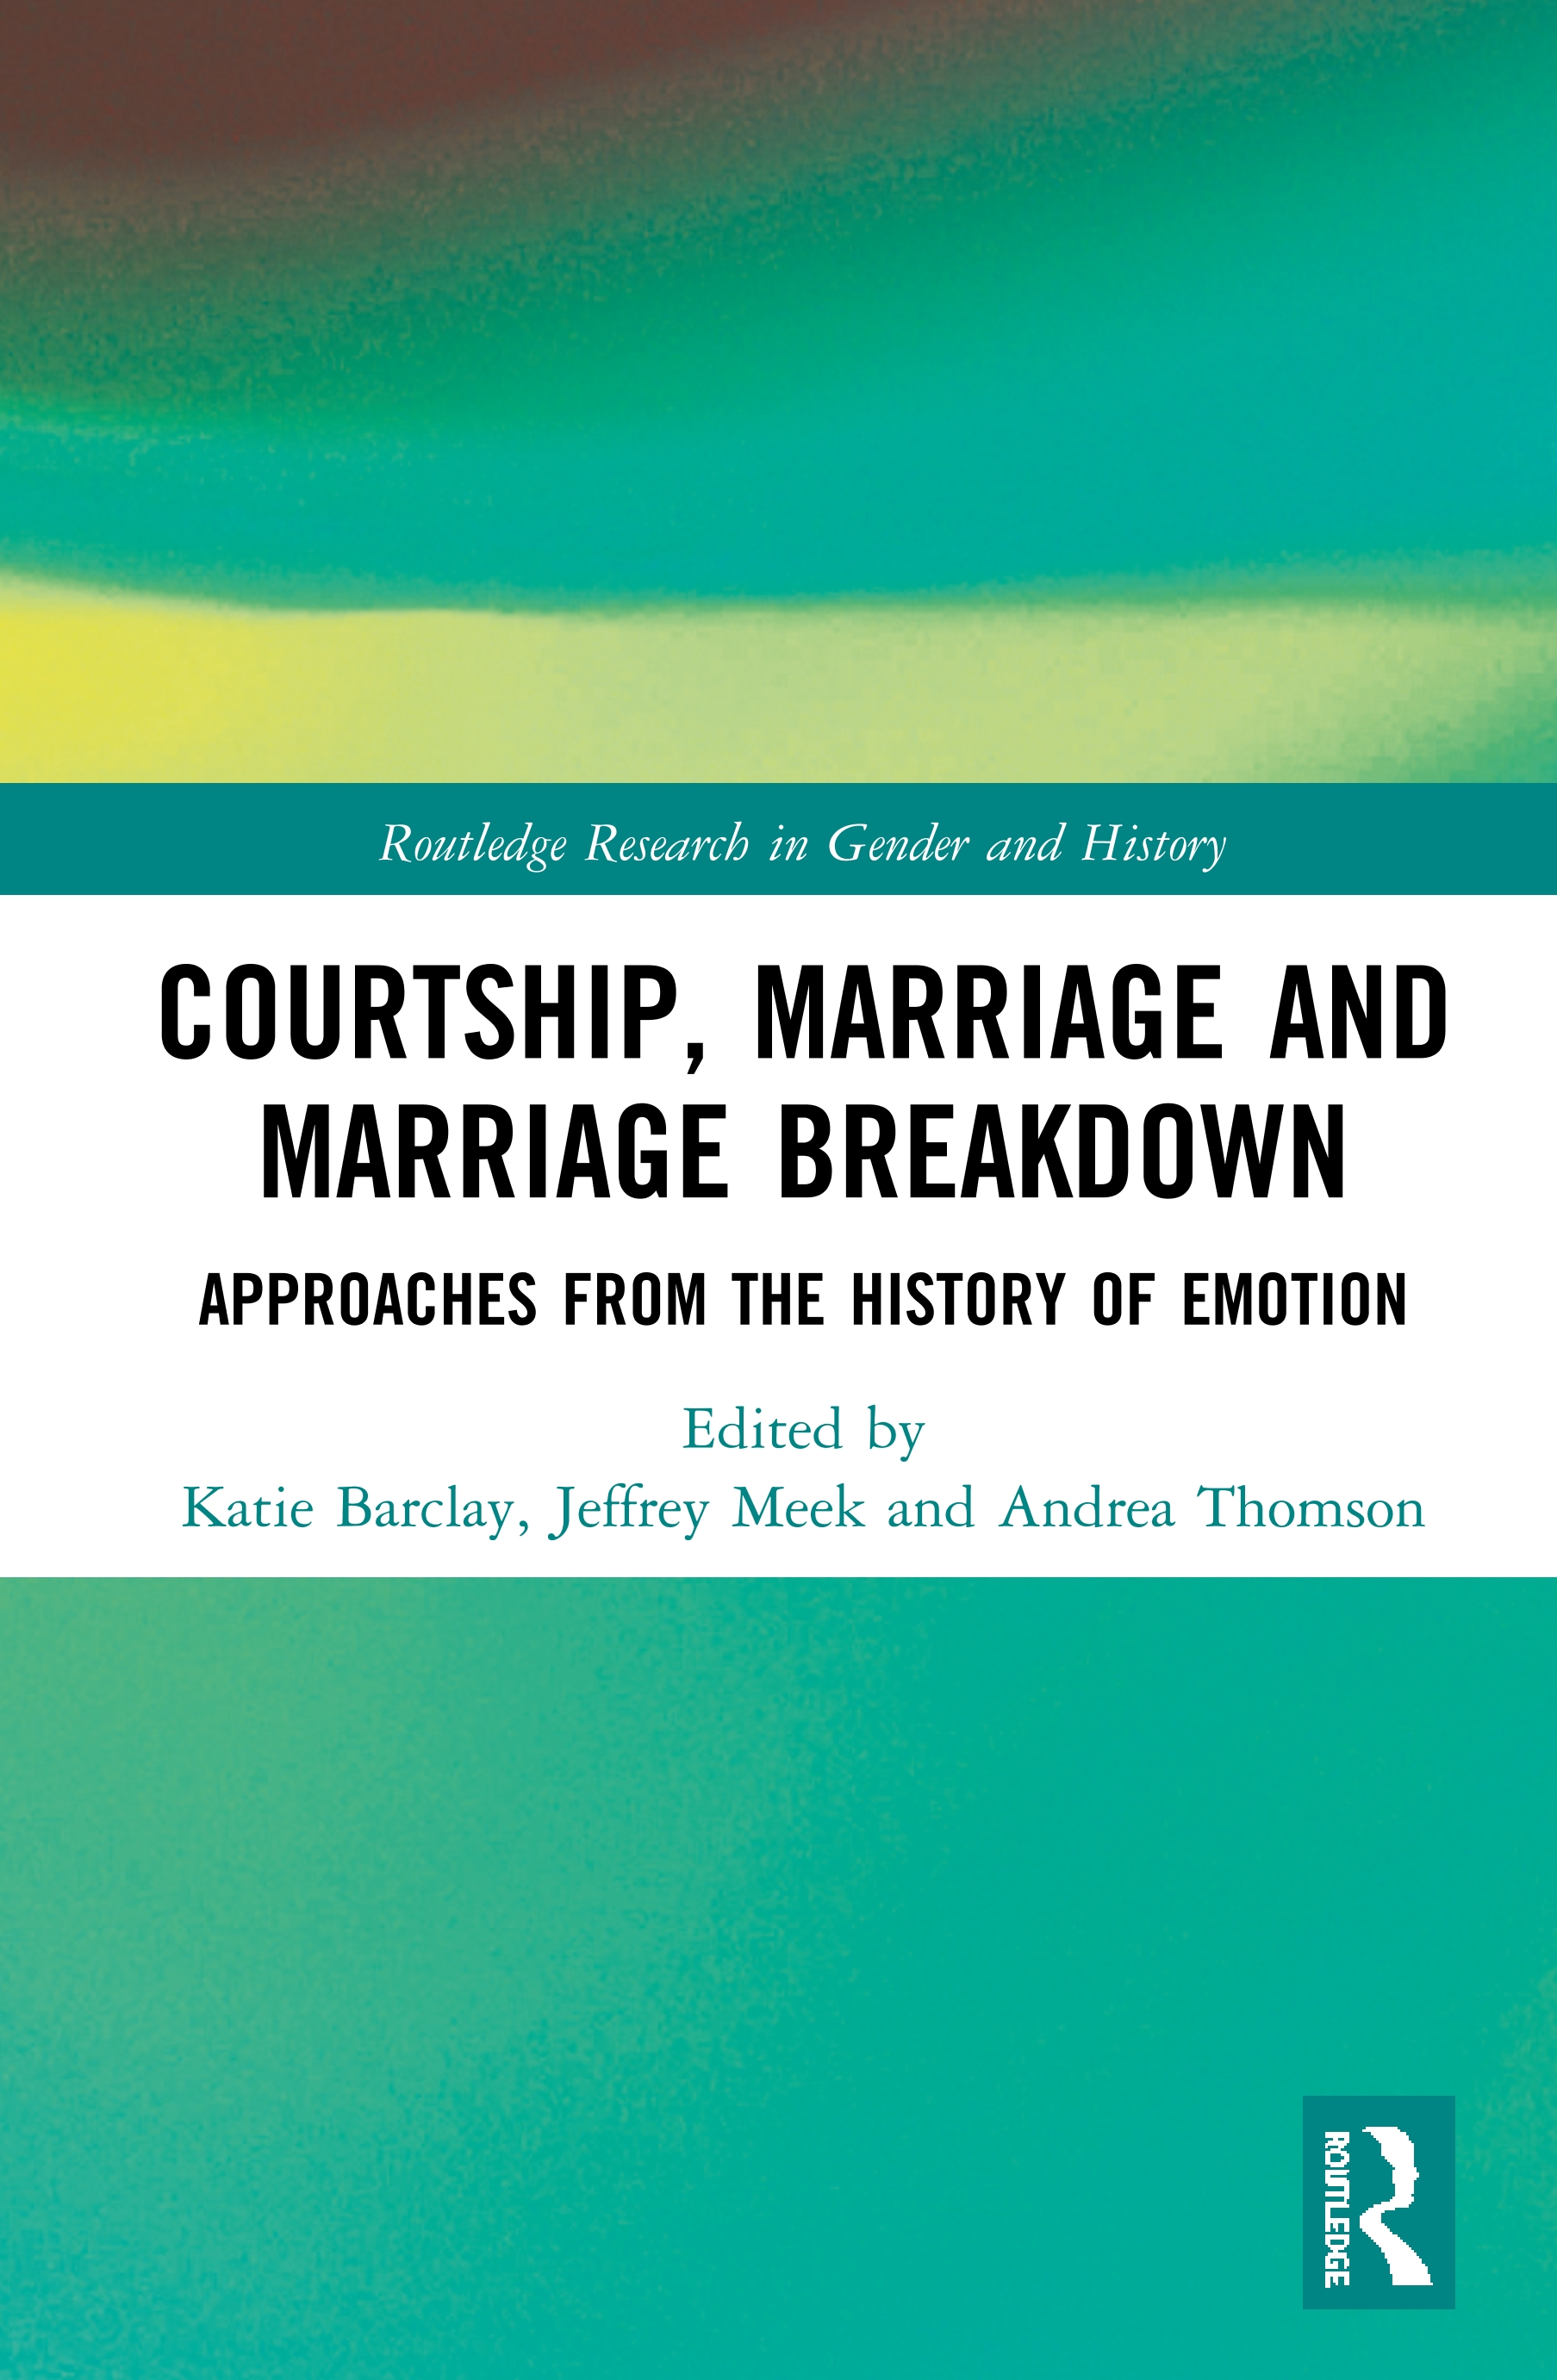 Courtship, Marriage and Marriage Breakdown